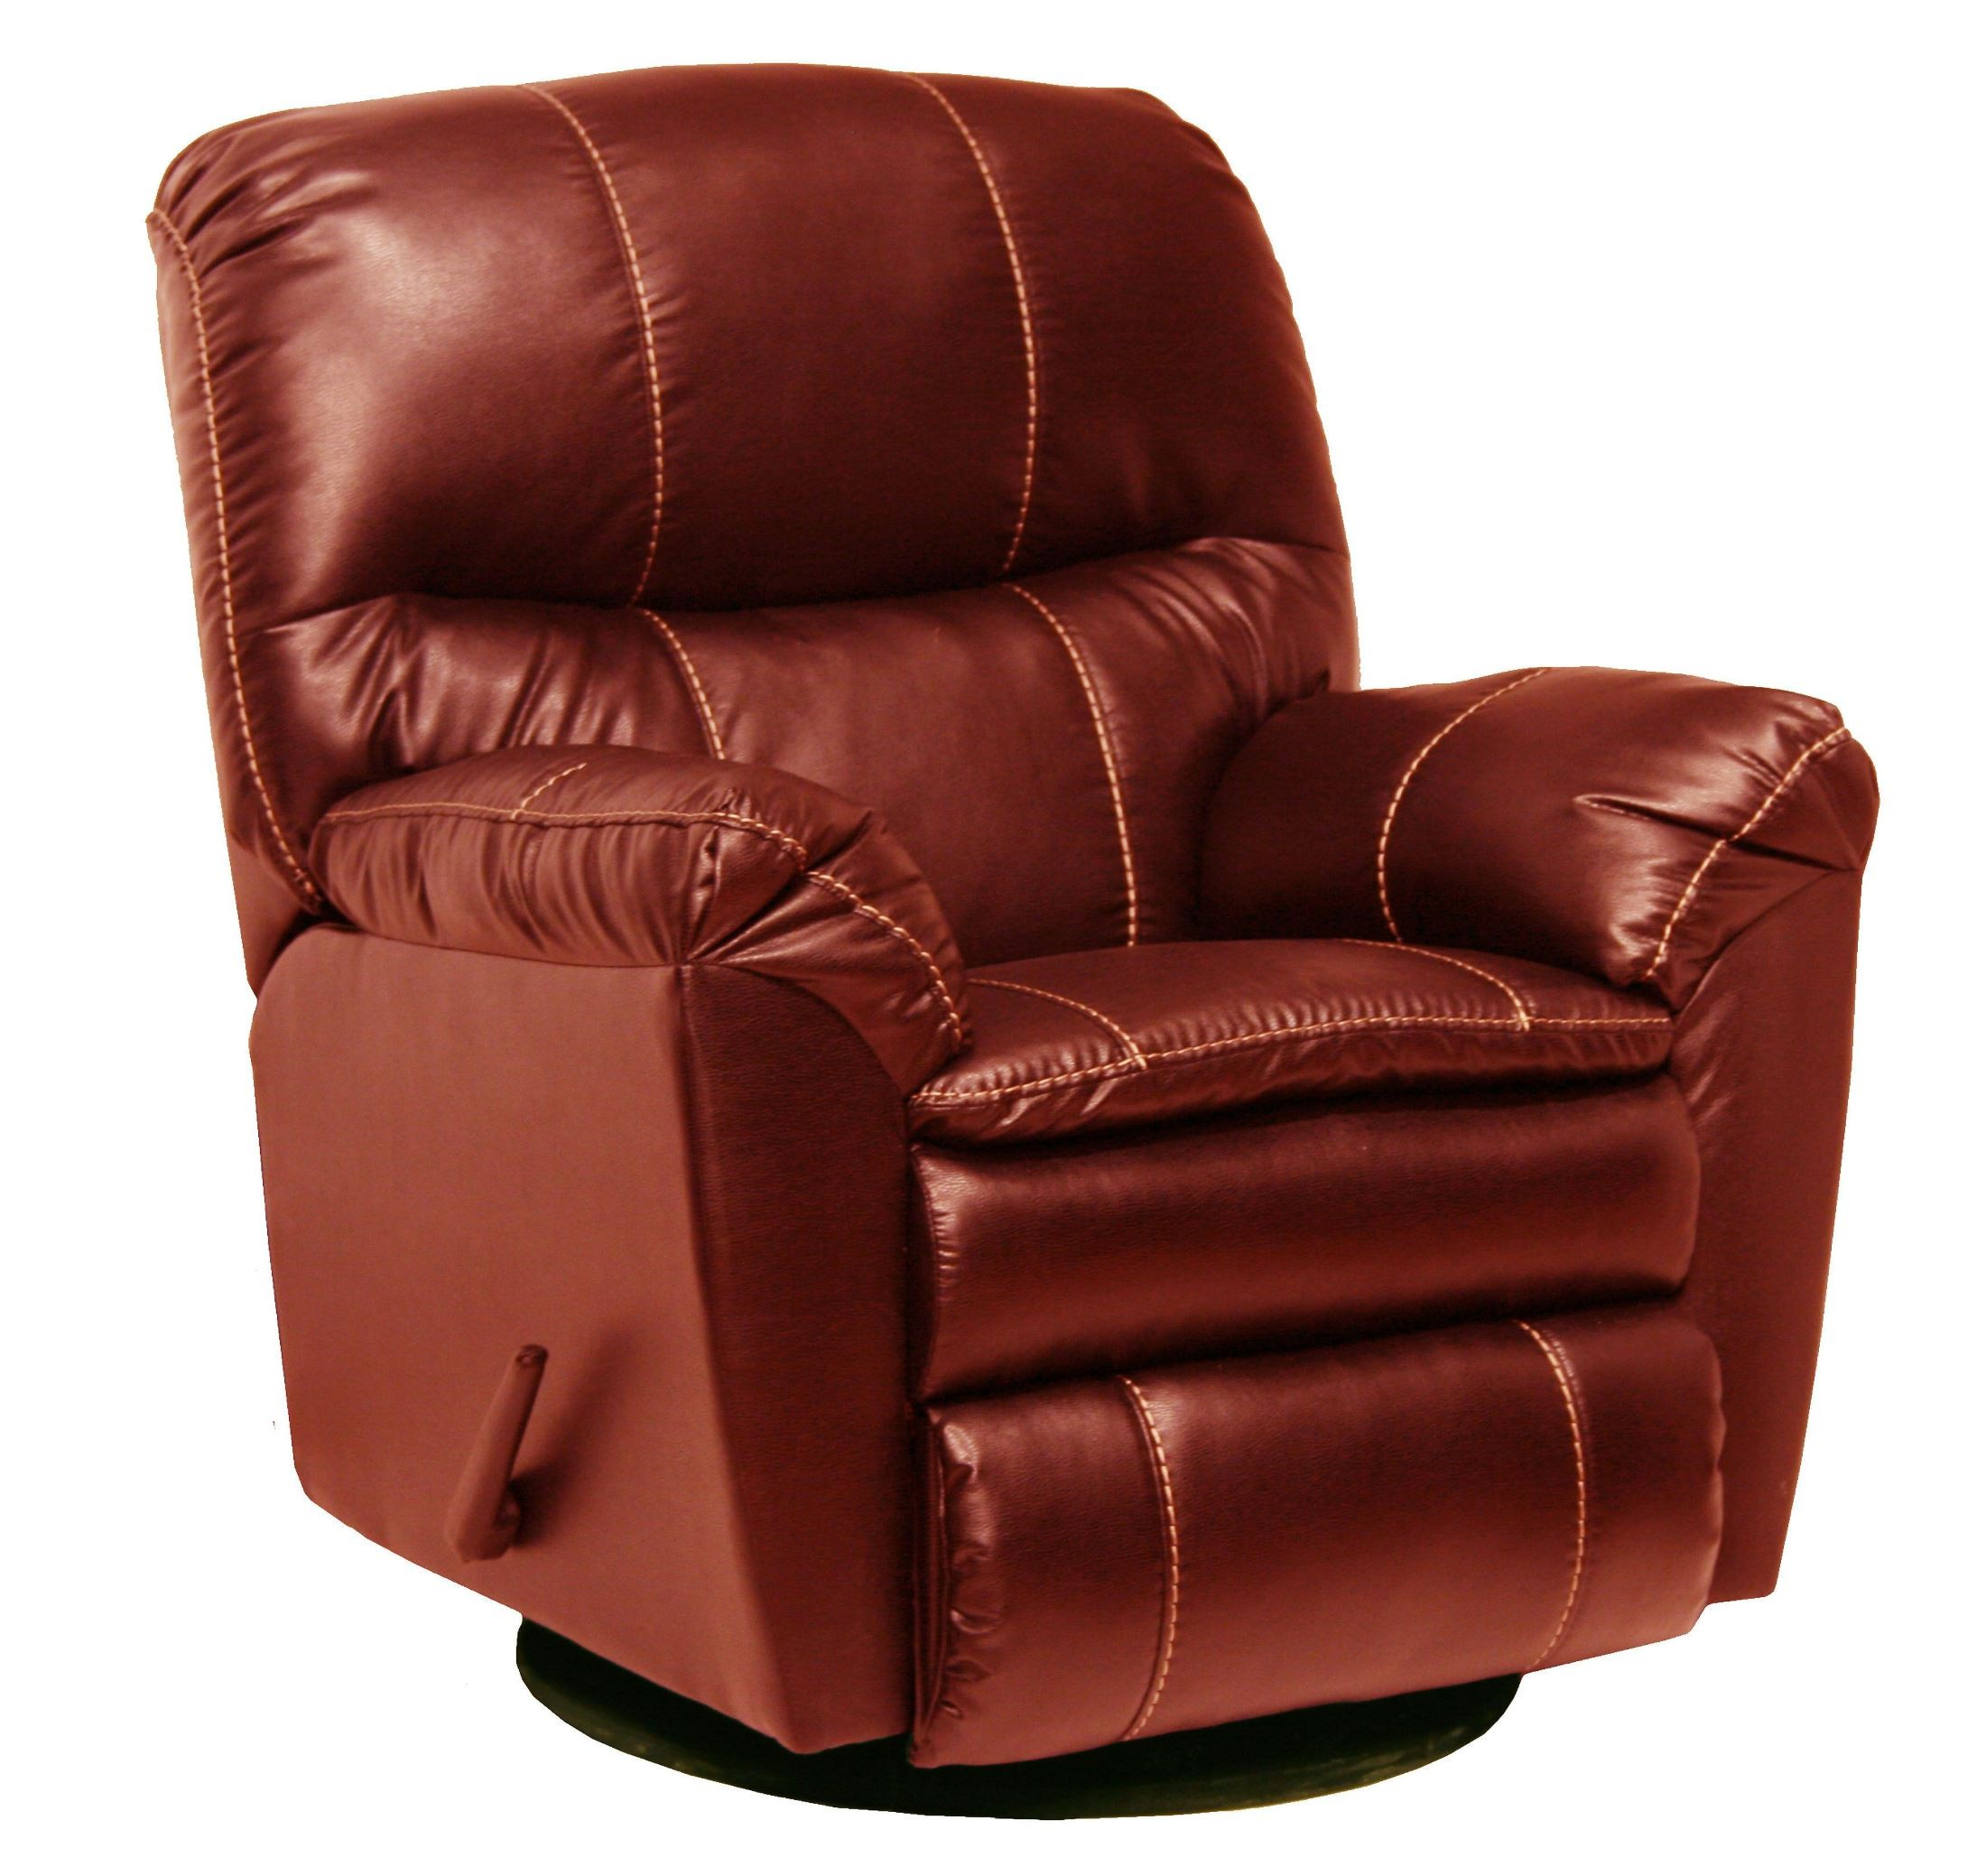 leather swivel chair plastic stool design cosmo red glider recliner from catnapper